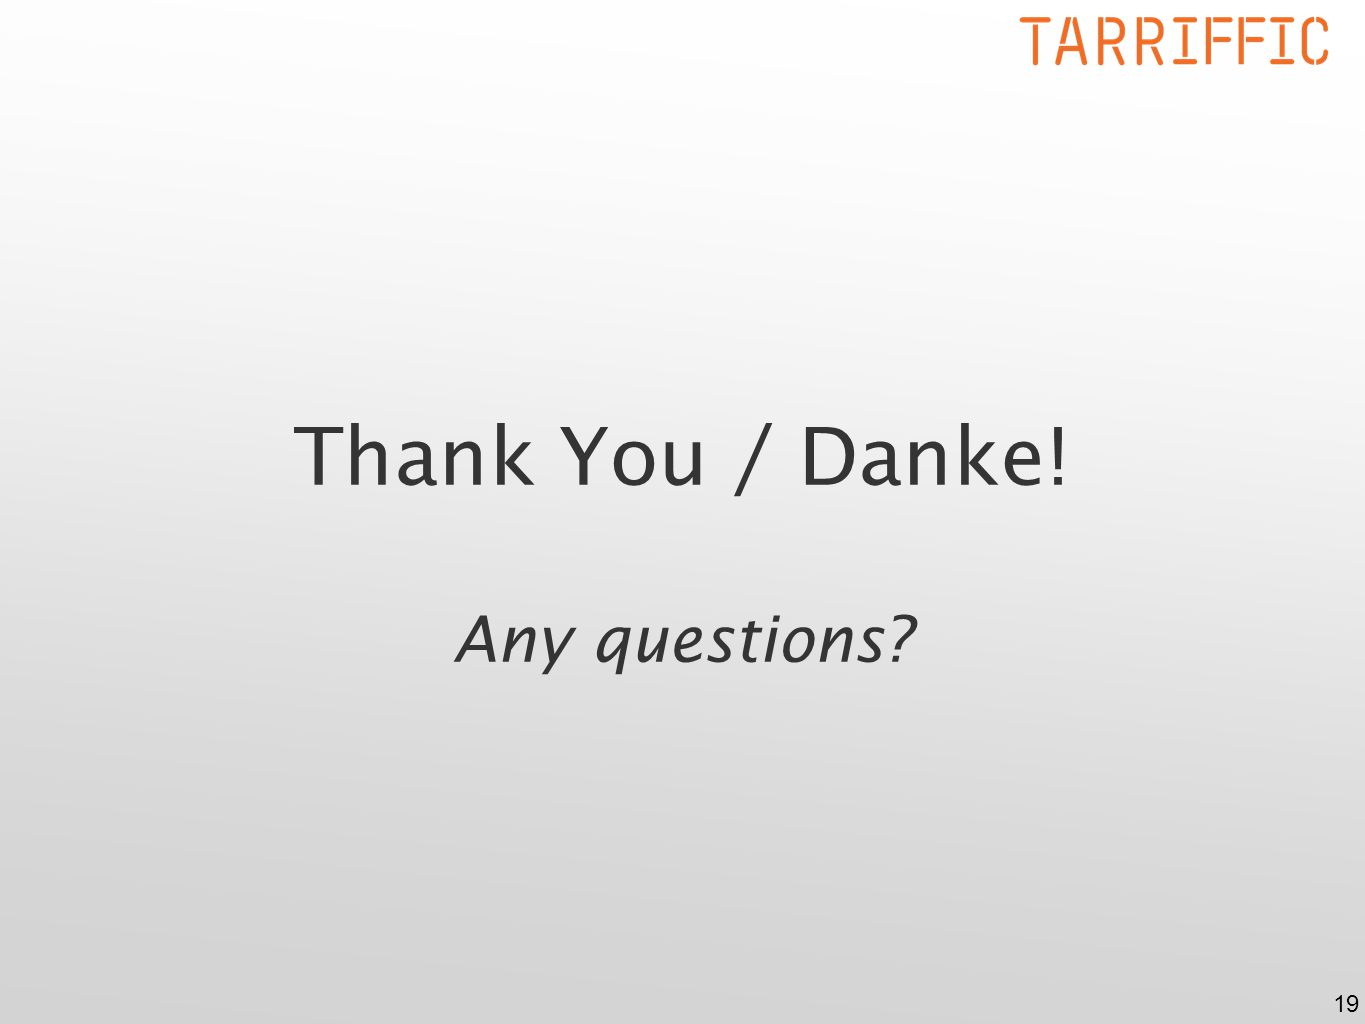 19 Thank You / Danke! Any questions